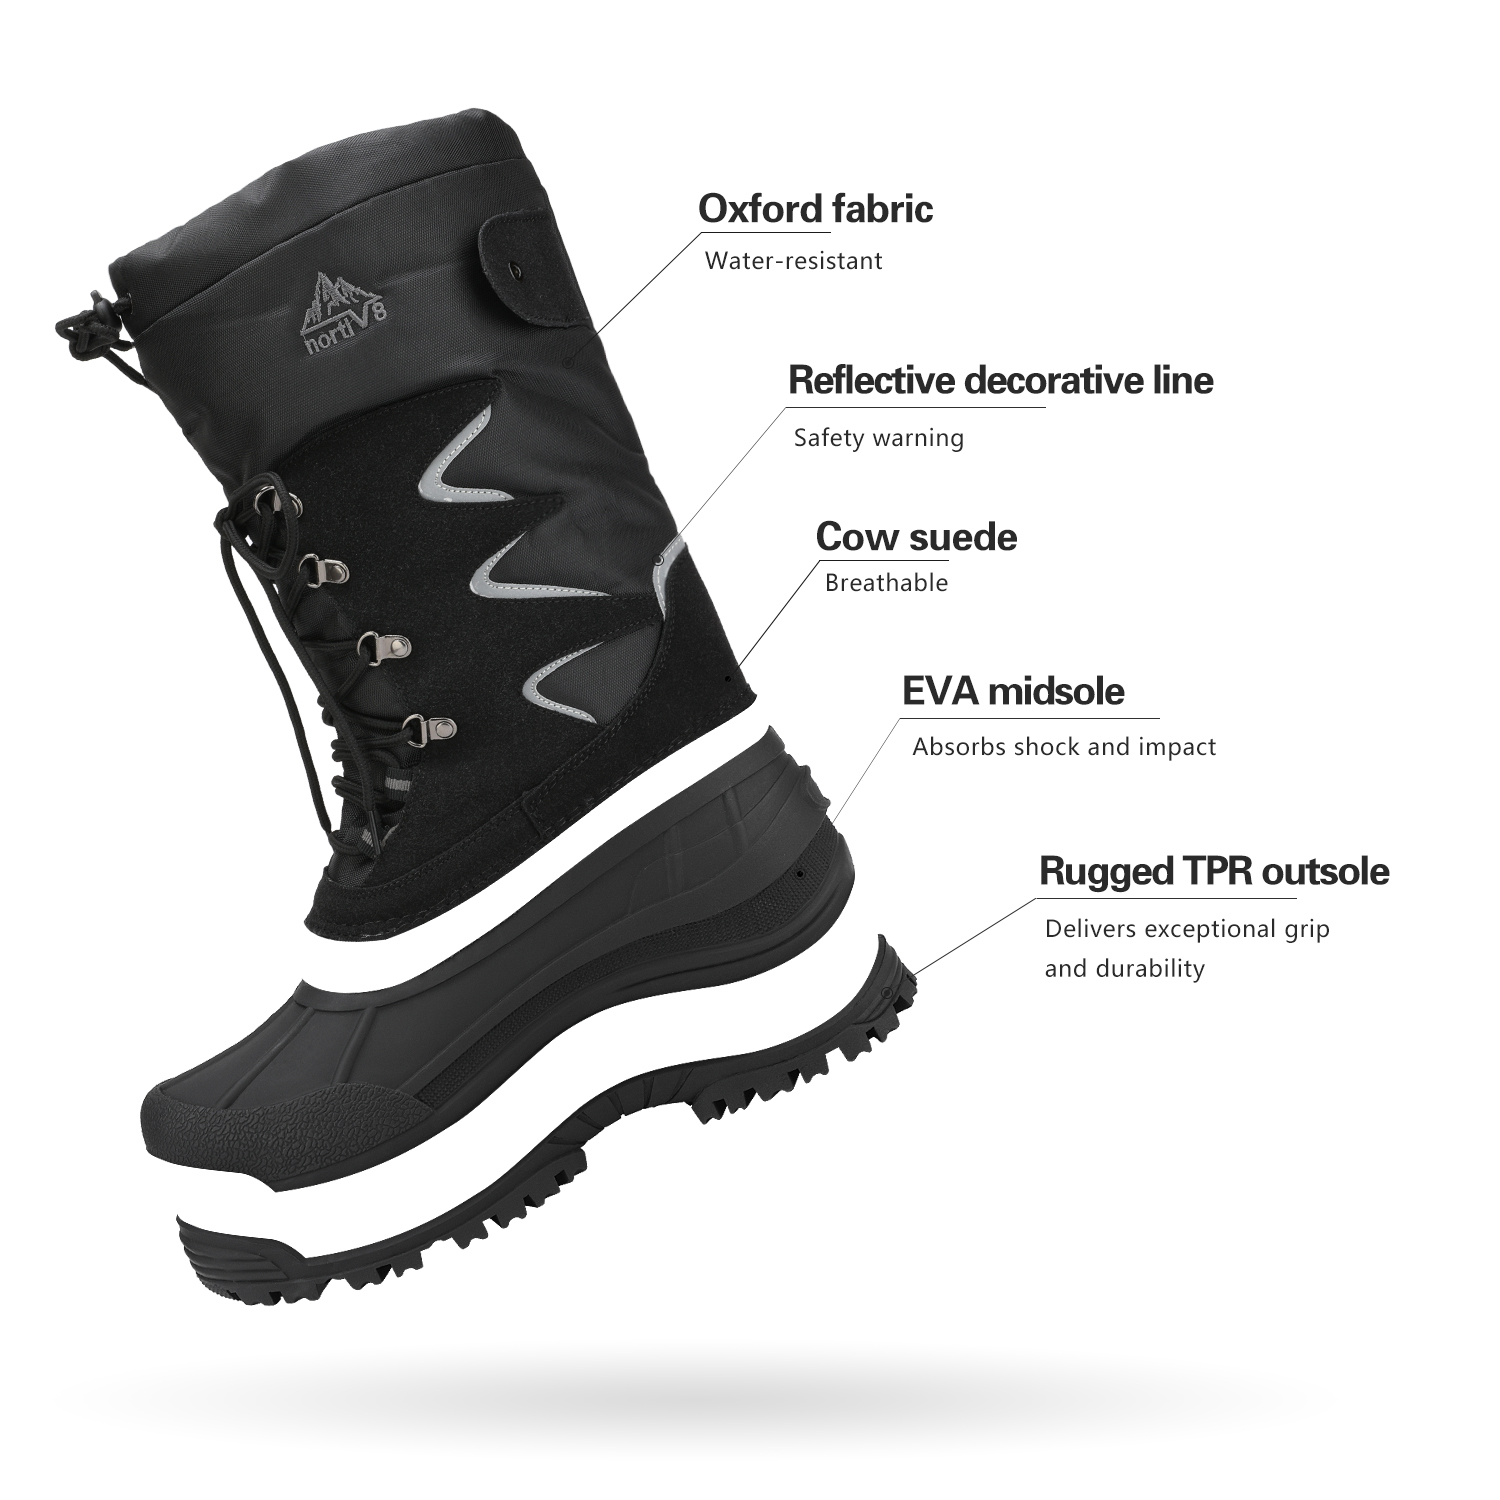 NORTIV-8-Men-039-s-Winter-Snow-Boots-Waterproof-Warm-Thermolite-Outdoor-Hiking-Boots thumbnail 14